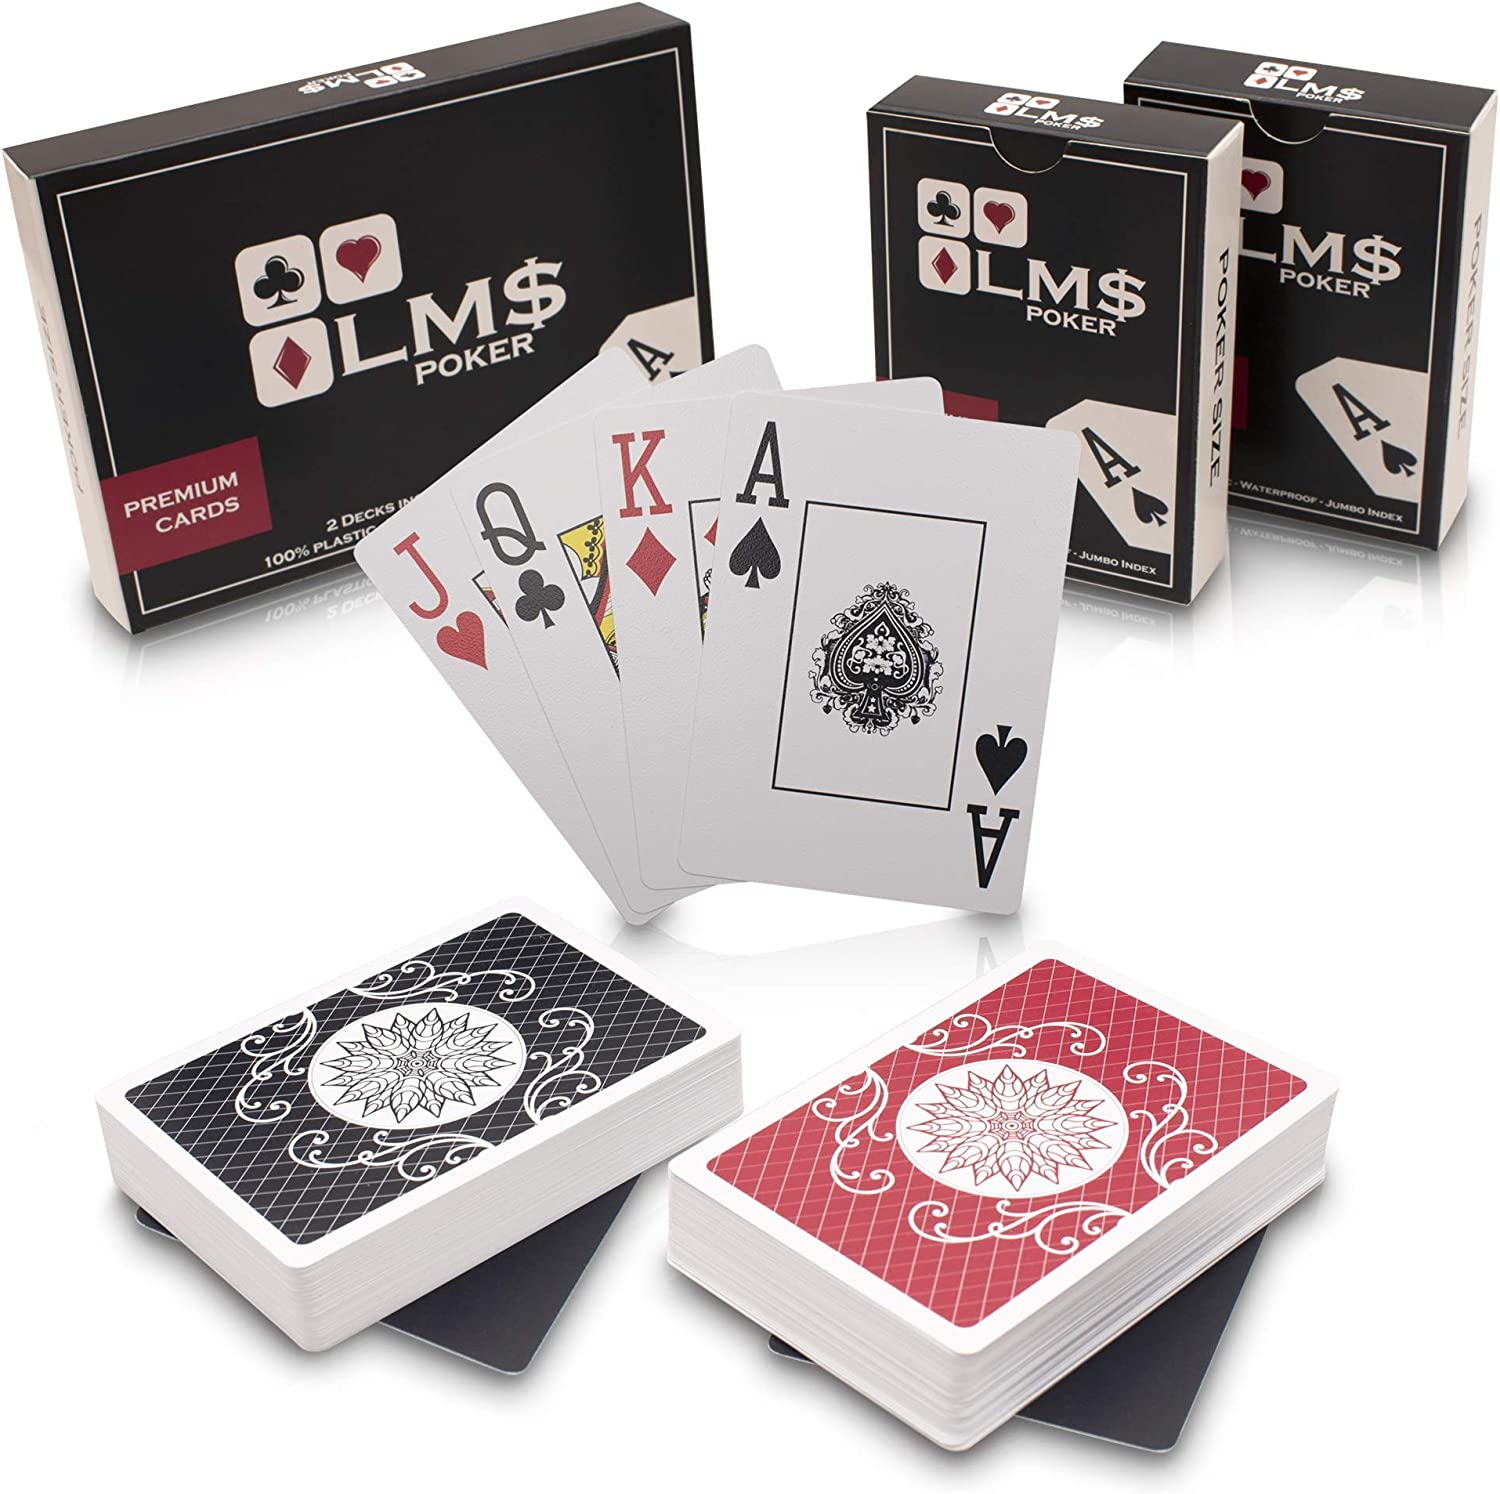 54 Cards including Jokers Pack of Plastic Coated Jumbo Playing Cards